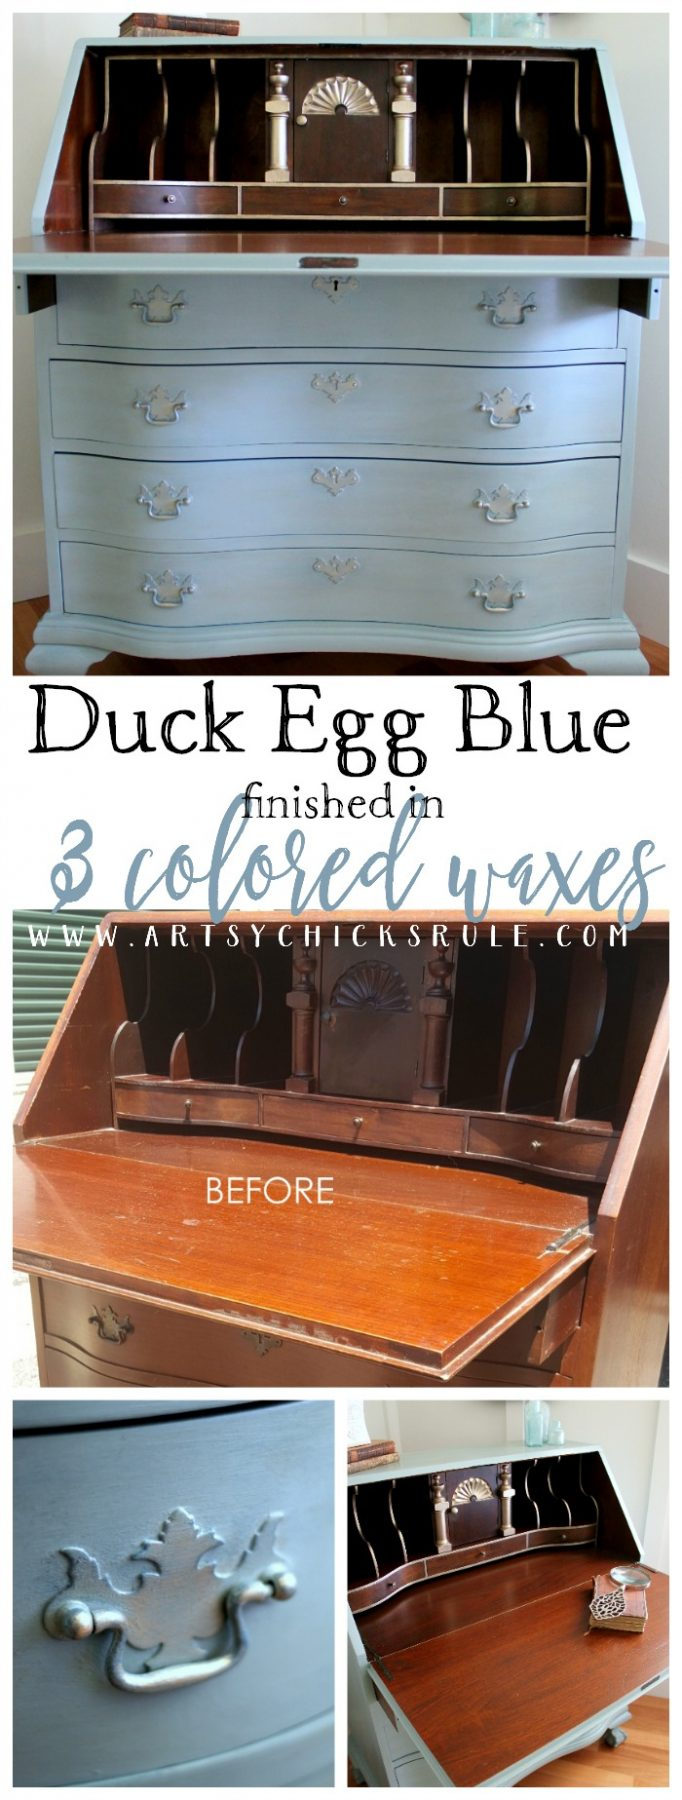 3 Colored Waxes Make This Great! Secretary Desk Makeover (Chalk Paint by Annie Sloan) - Before & After artsychicksrule.com #duckeggblue #chalkpaint